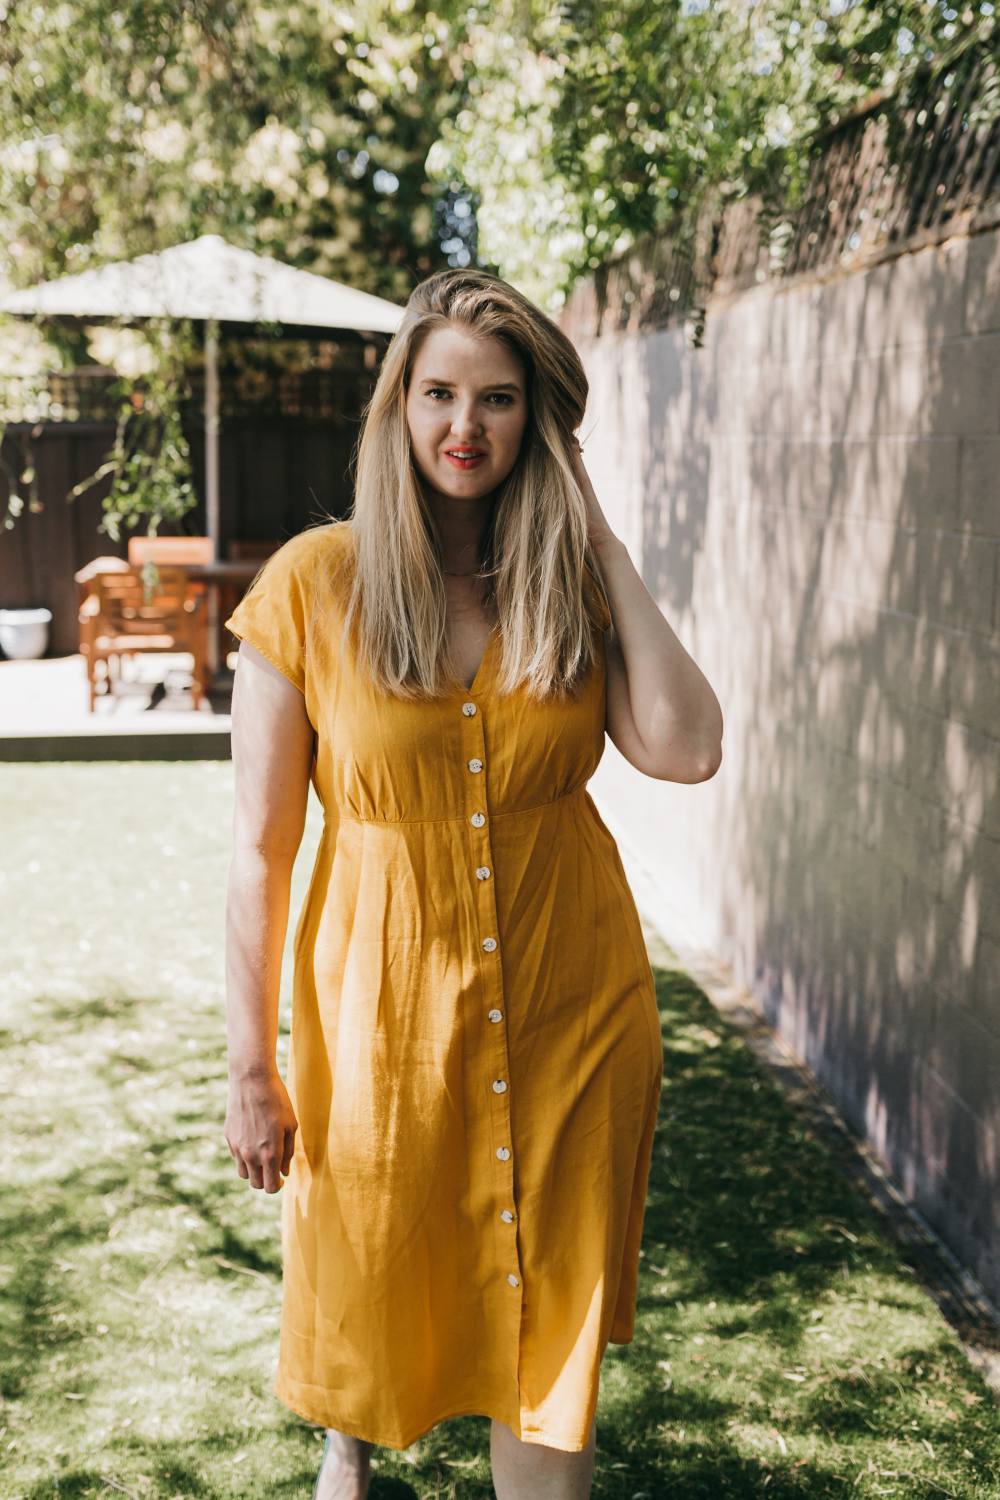 Affordable Yellow Summer Dress Tall Girl Fashion Yellow Dress Summer Tall Girl [ 1500 x 1000 Pixel ]